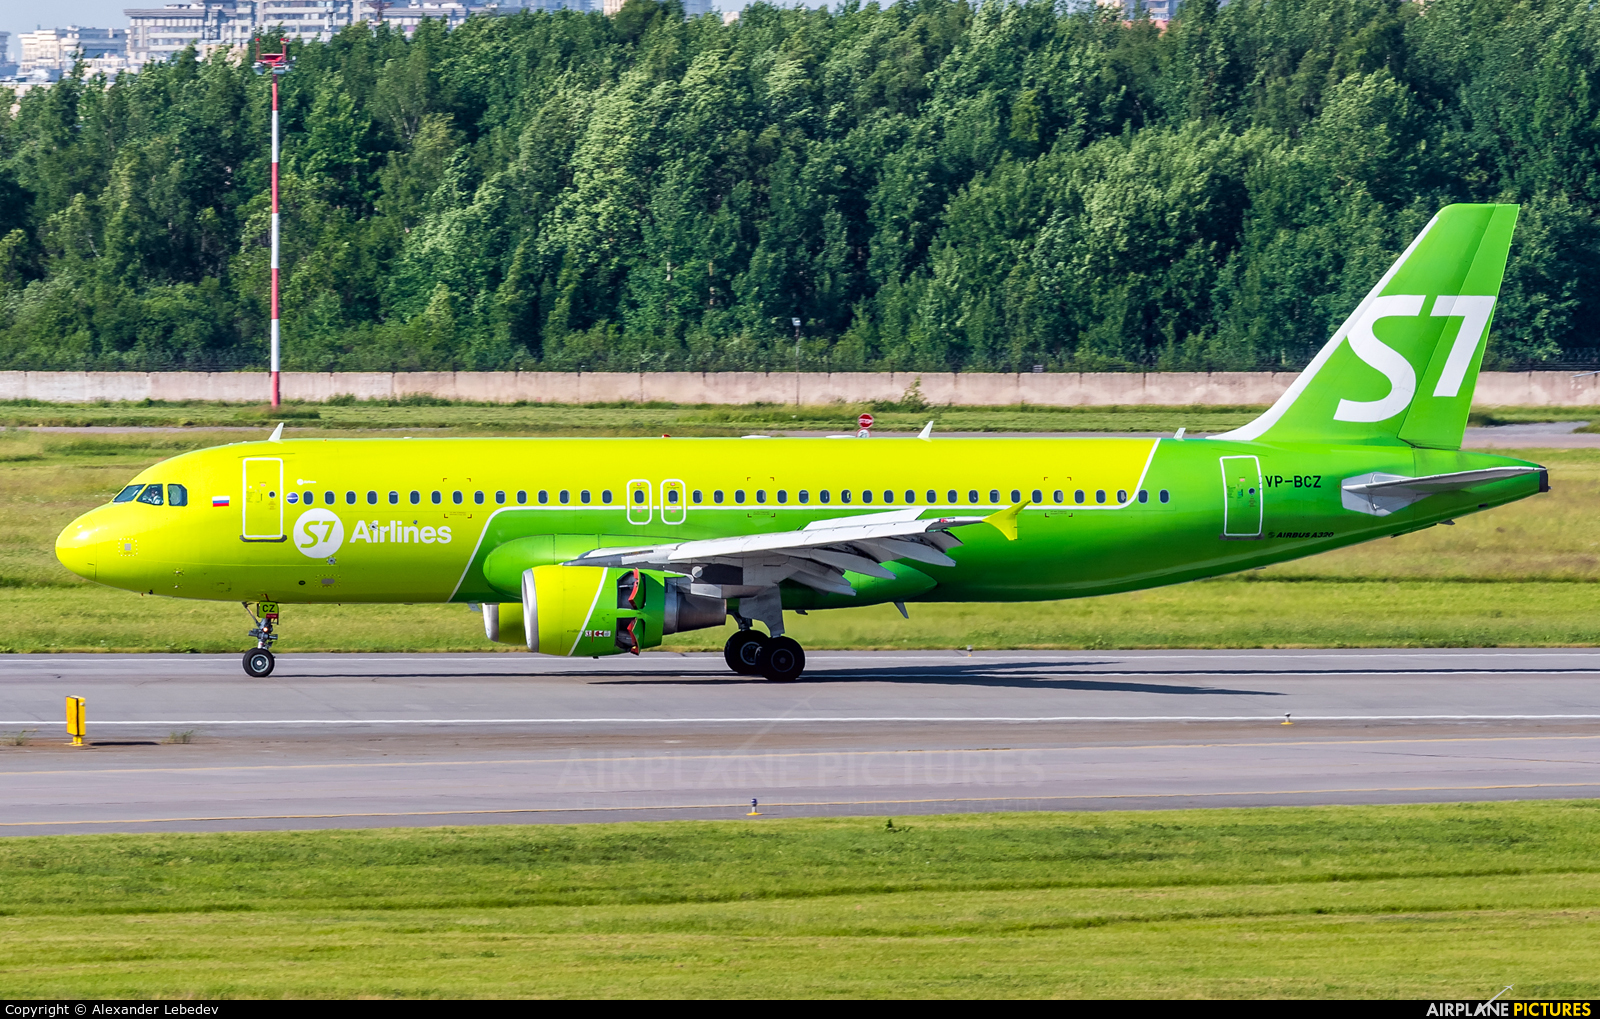 S7 Airlines VP-BCZ aircraft at St. Petersburg - Pulkovo